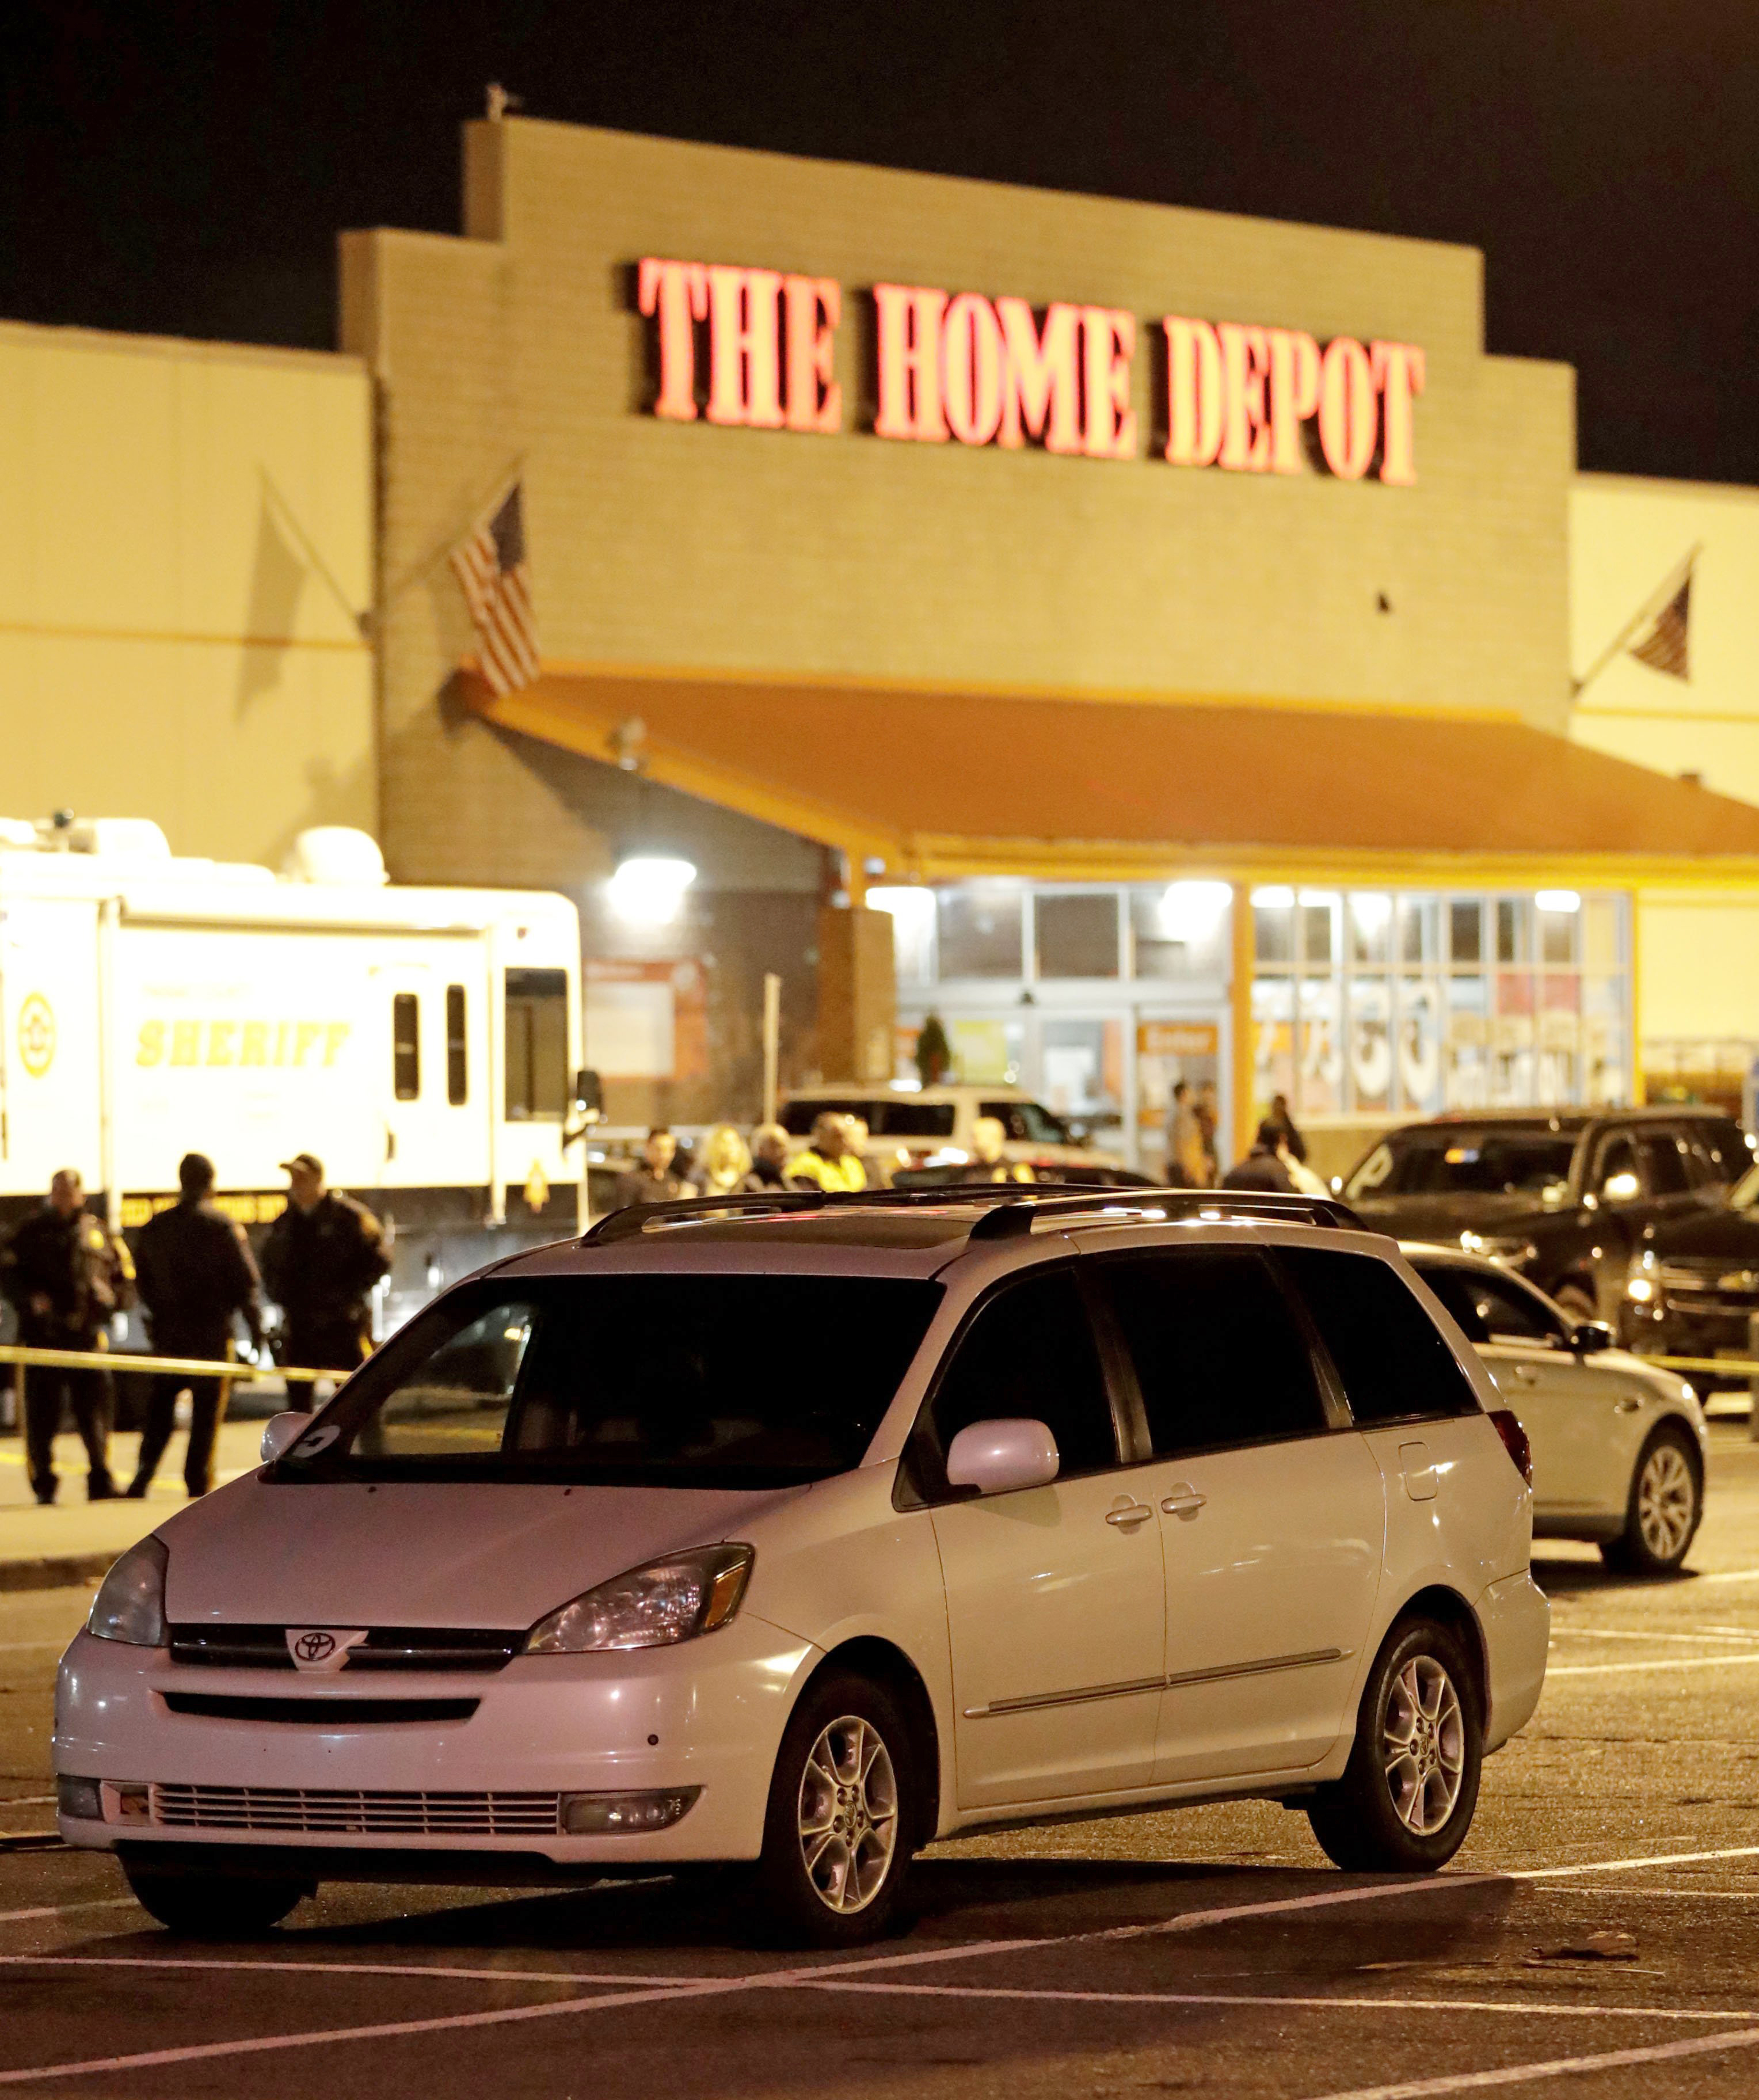 Image: New Jersey Home Depot